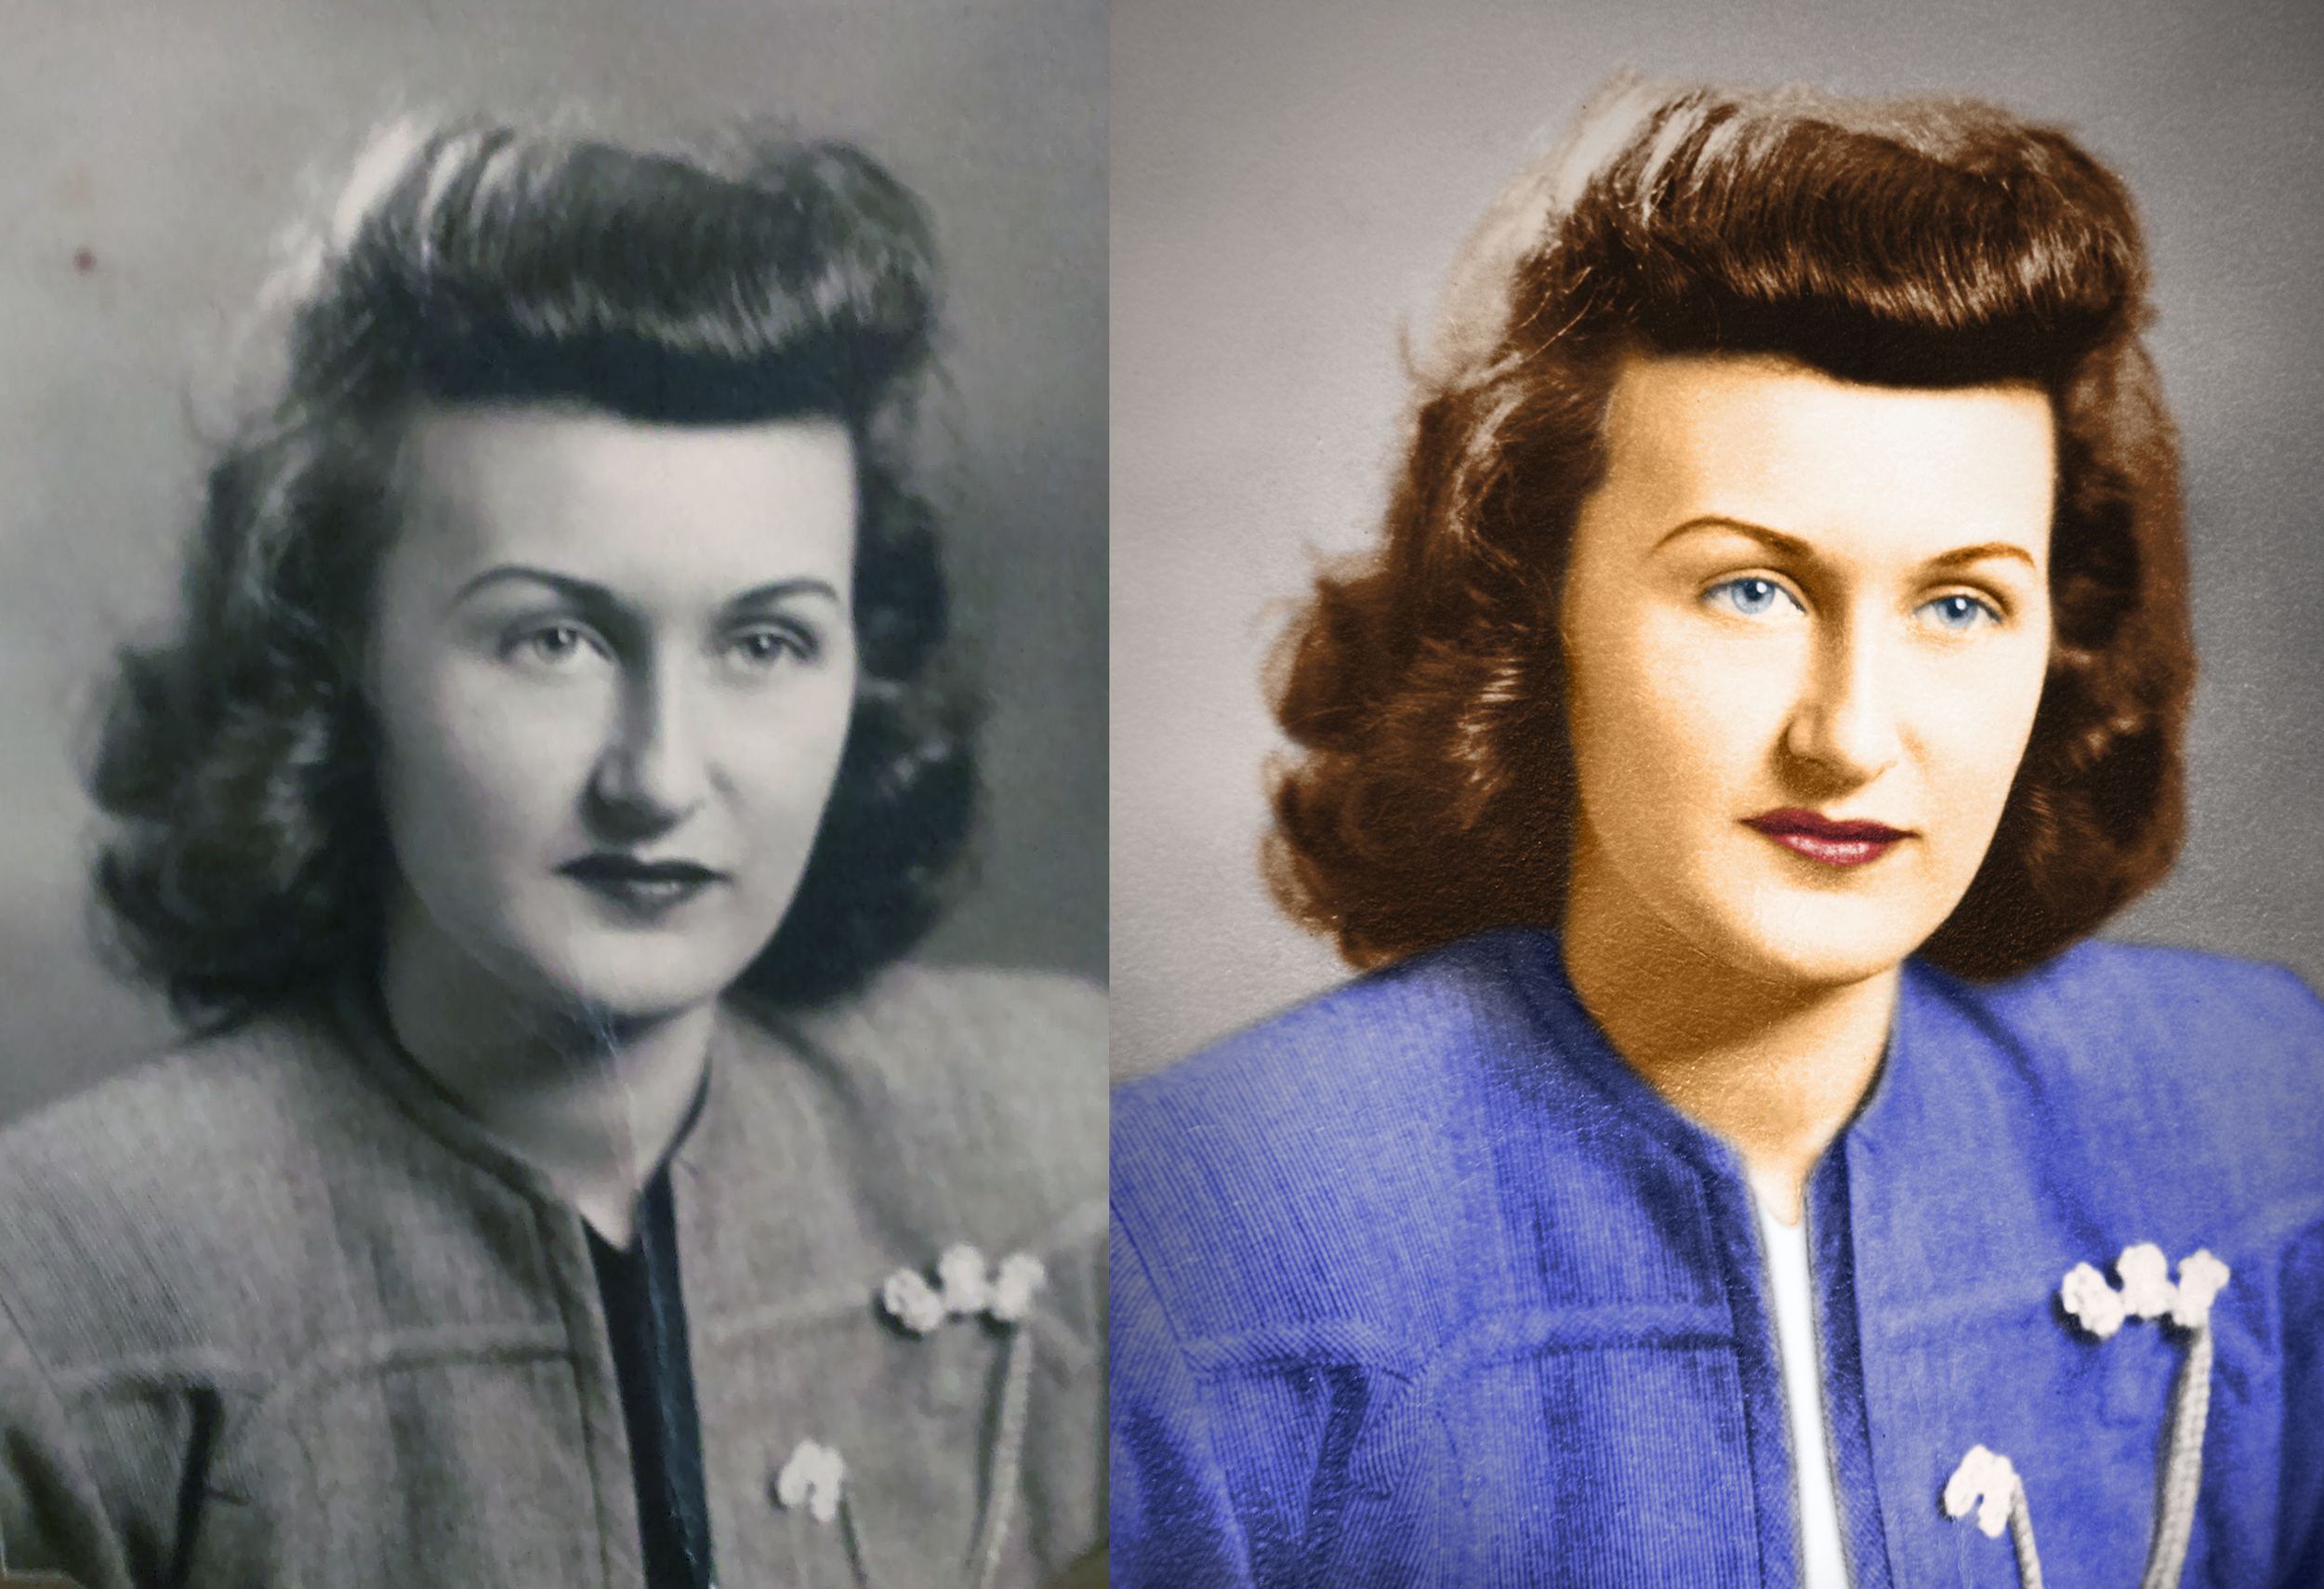 photo picture image print restoration colorization service touch up old color black and white